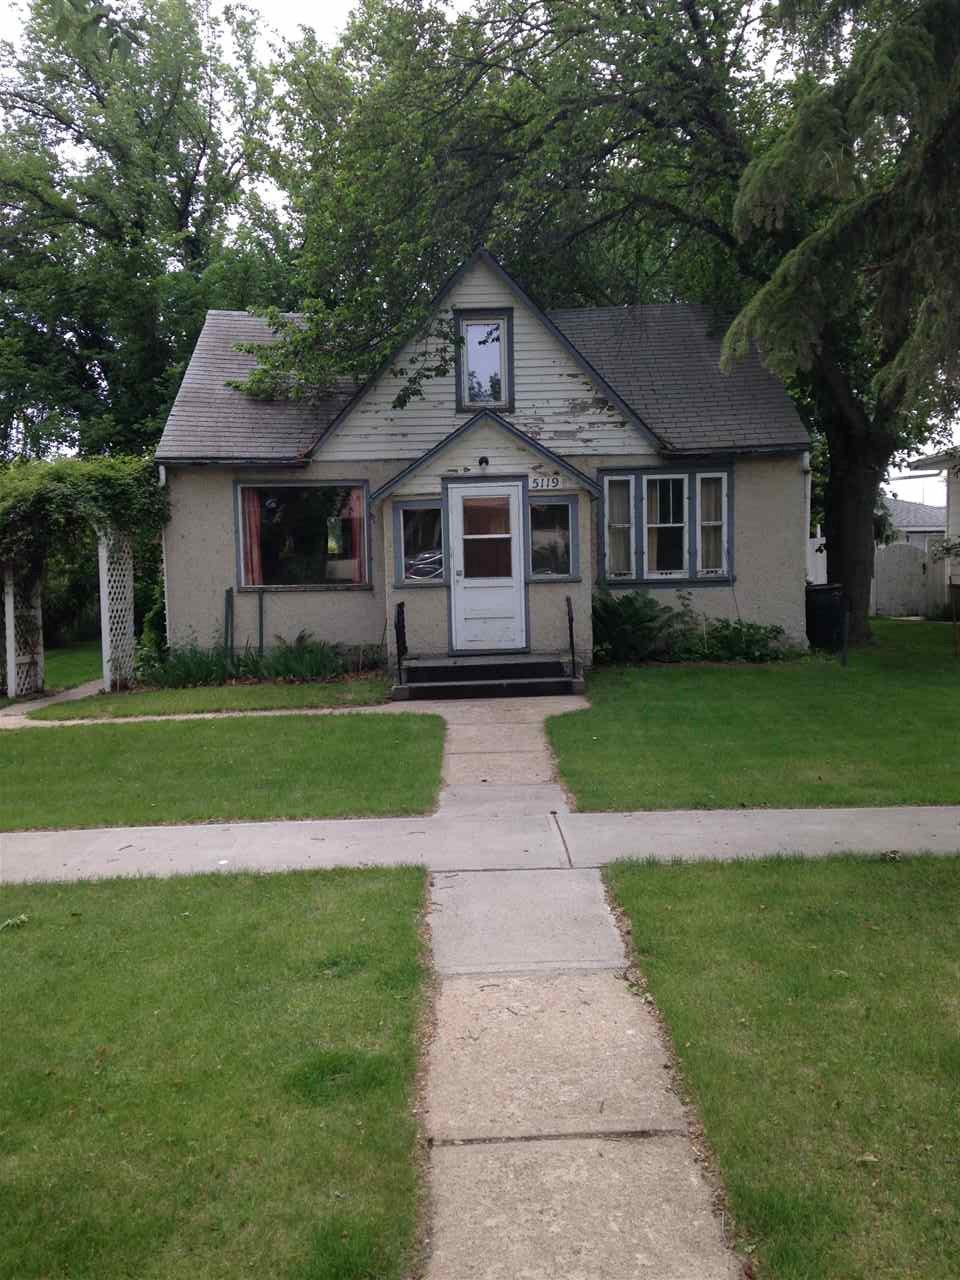 Good potential for the handy person in this 4 bedroom, 1 bath home close to school, shopping and clinic. Addition on basement built in 1972 with some windows upgraded, hot water tank 2007, & newer furnace - approx. 5yrs. Large lot has mature trees, fruit trees and greenhouse. Needs some TLC.